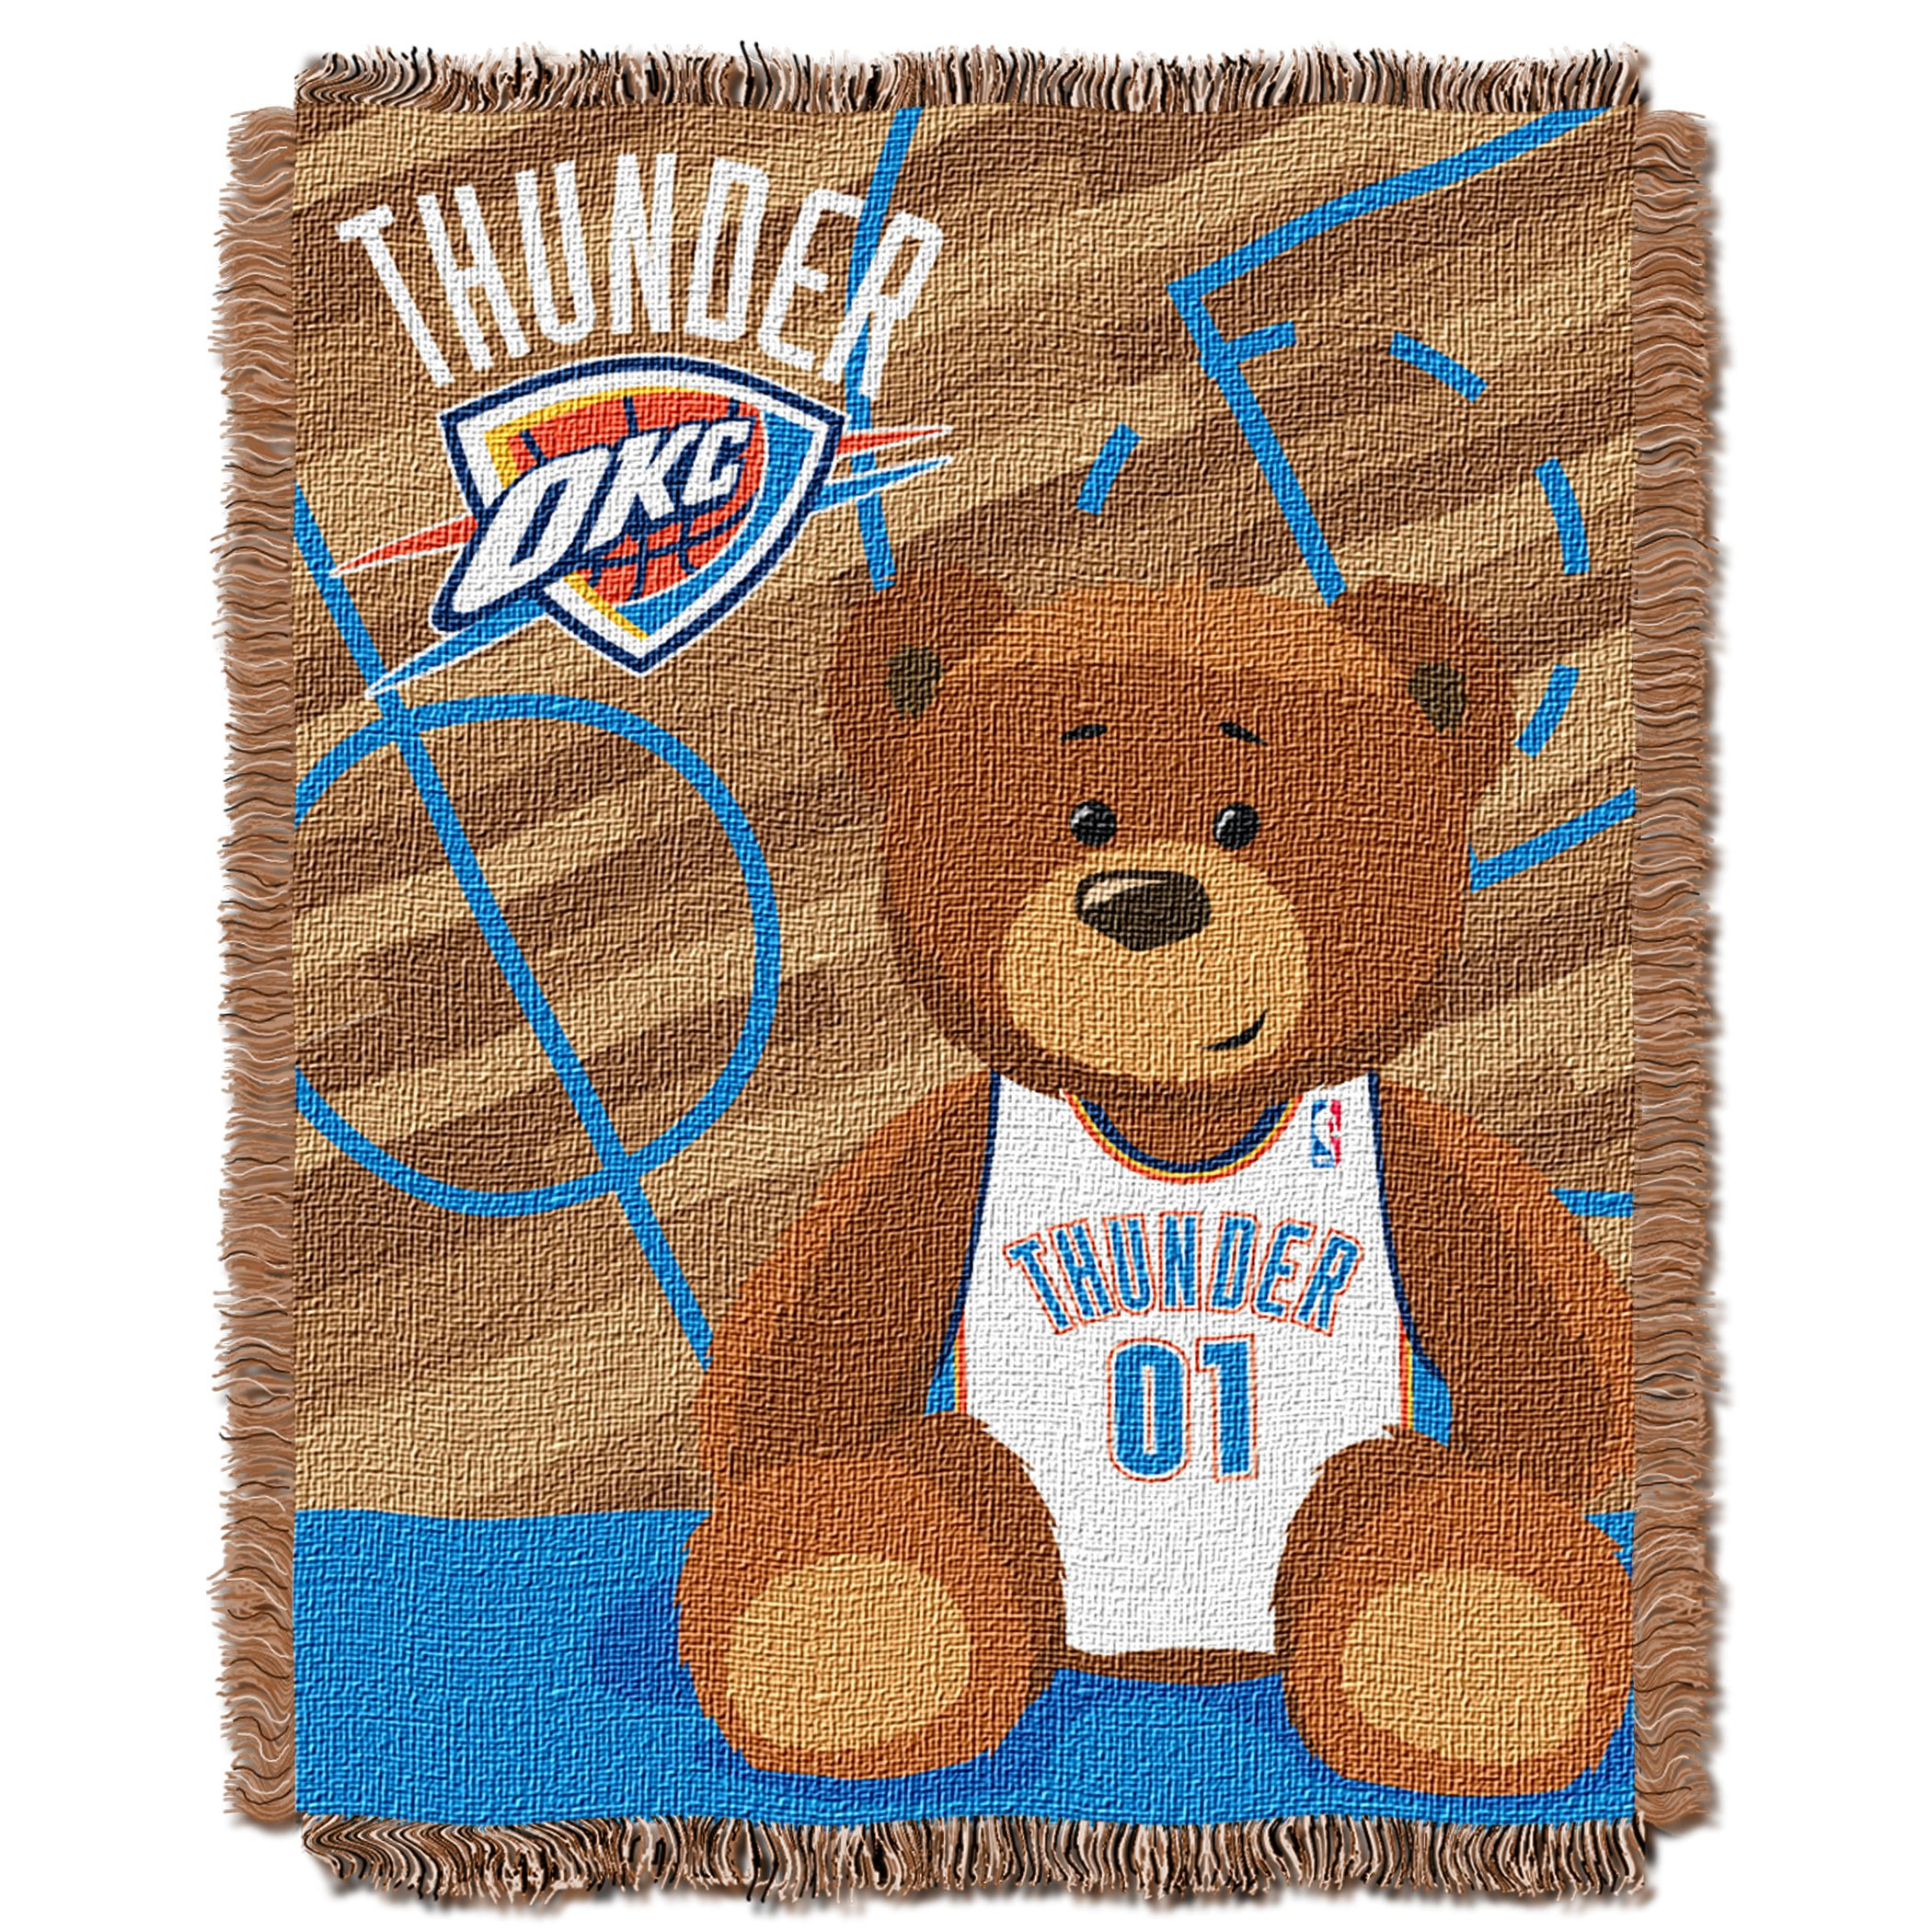 """Officially Licensed NBA """"Half Court"""" Woven Jacquard Baby Throw Blanket, Multi Color, 36"""" x 46"""""""